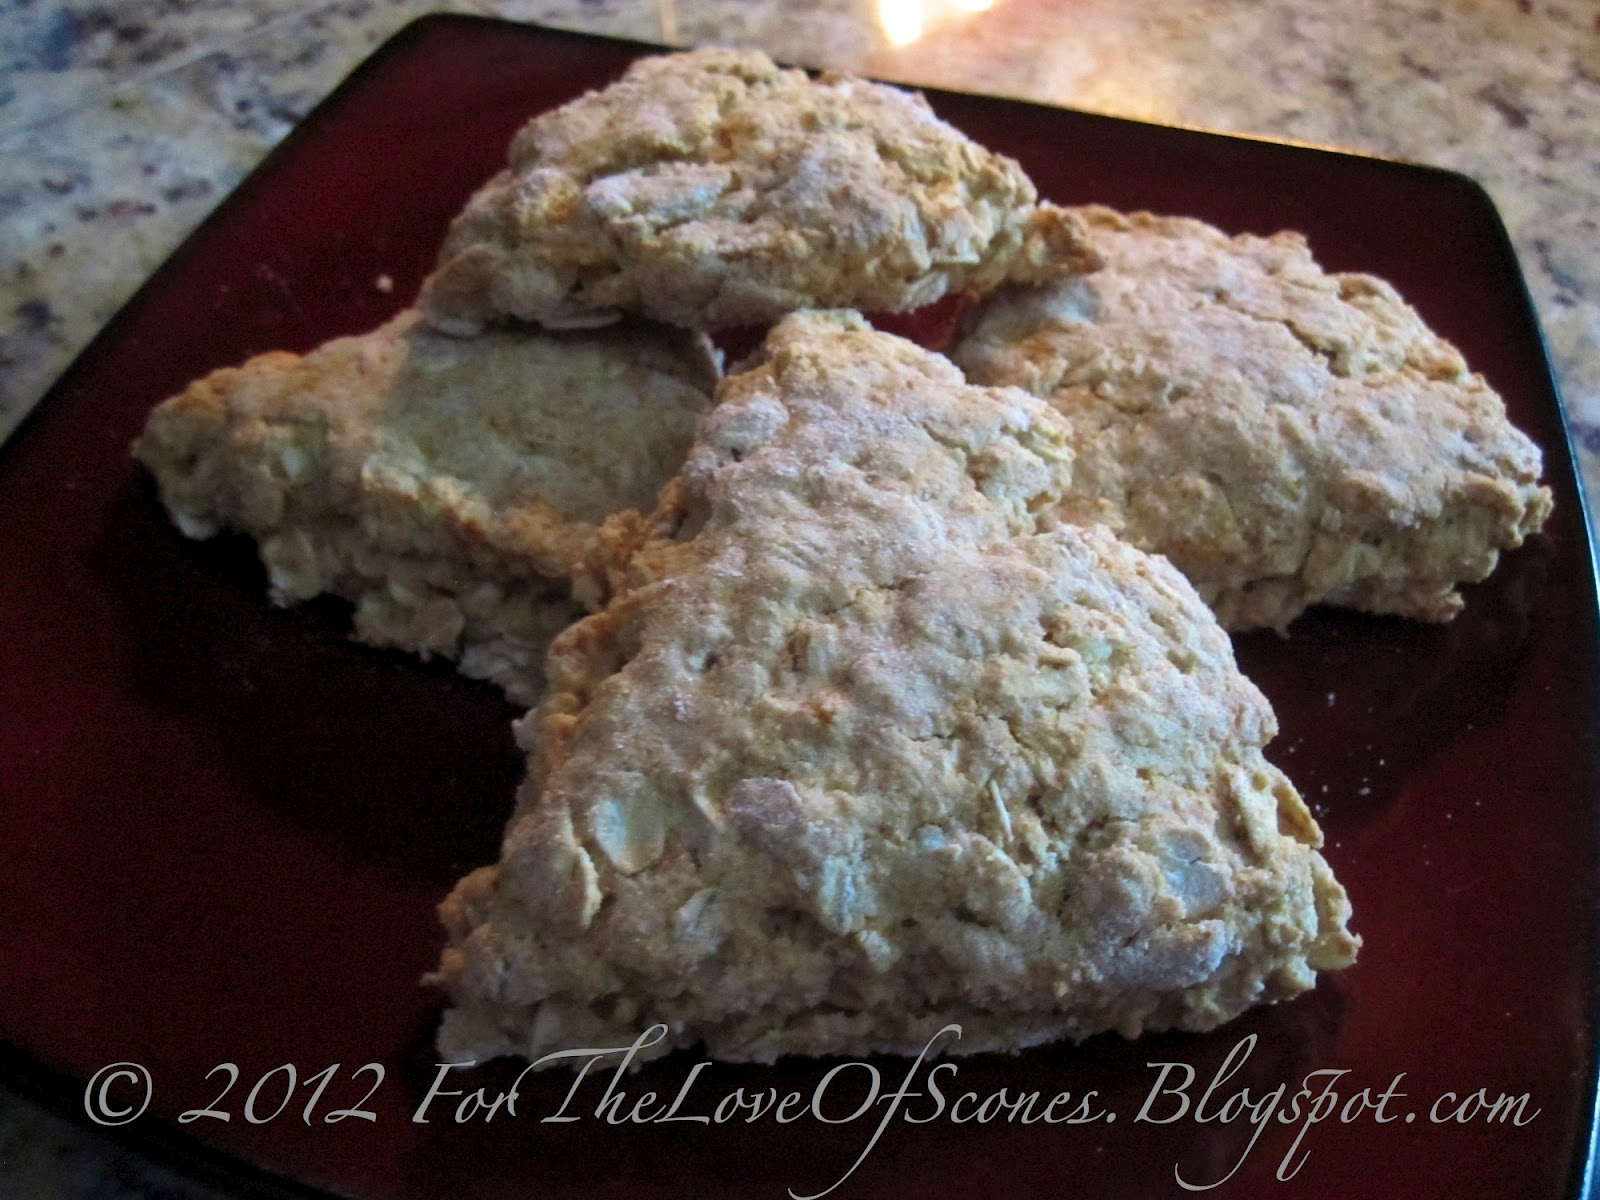 For the Love of Scones!: Scottish Oat & Treacle Scones